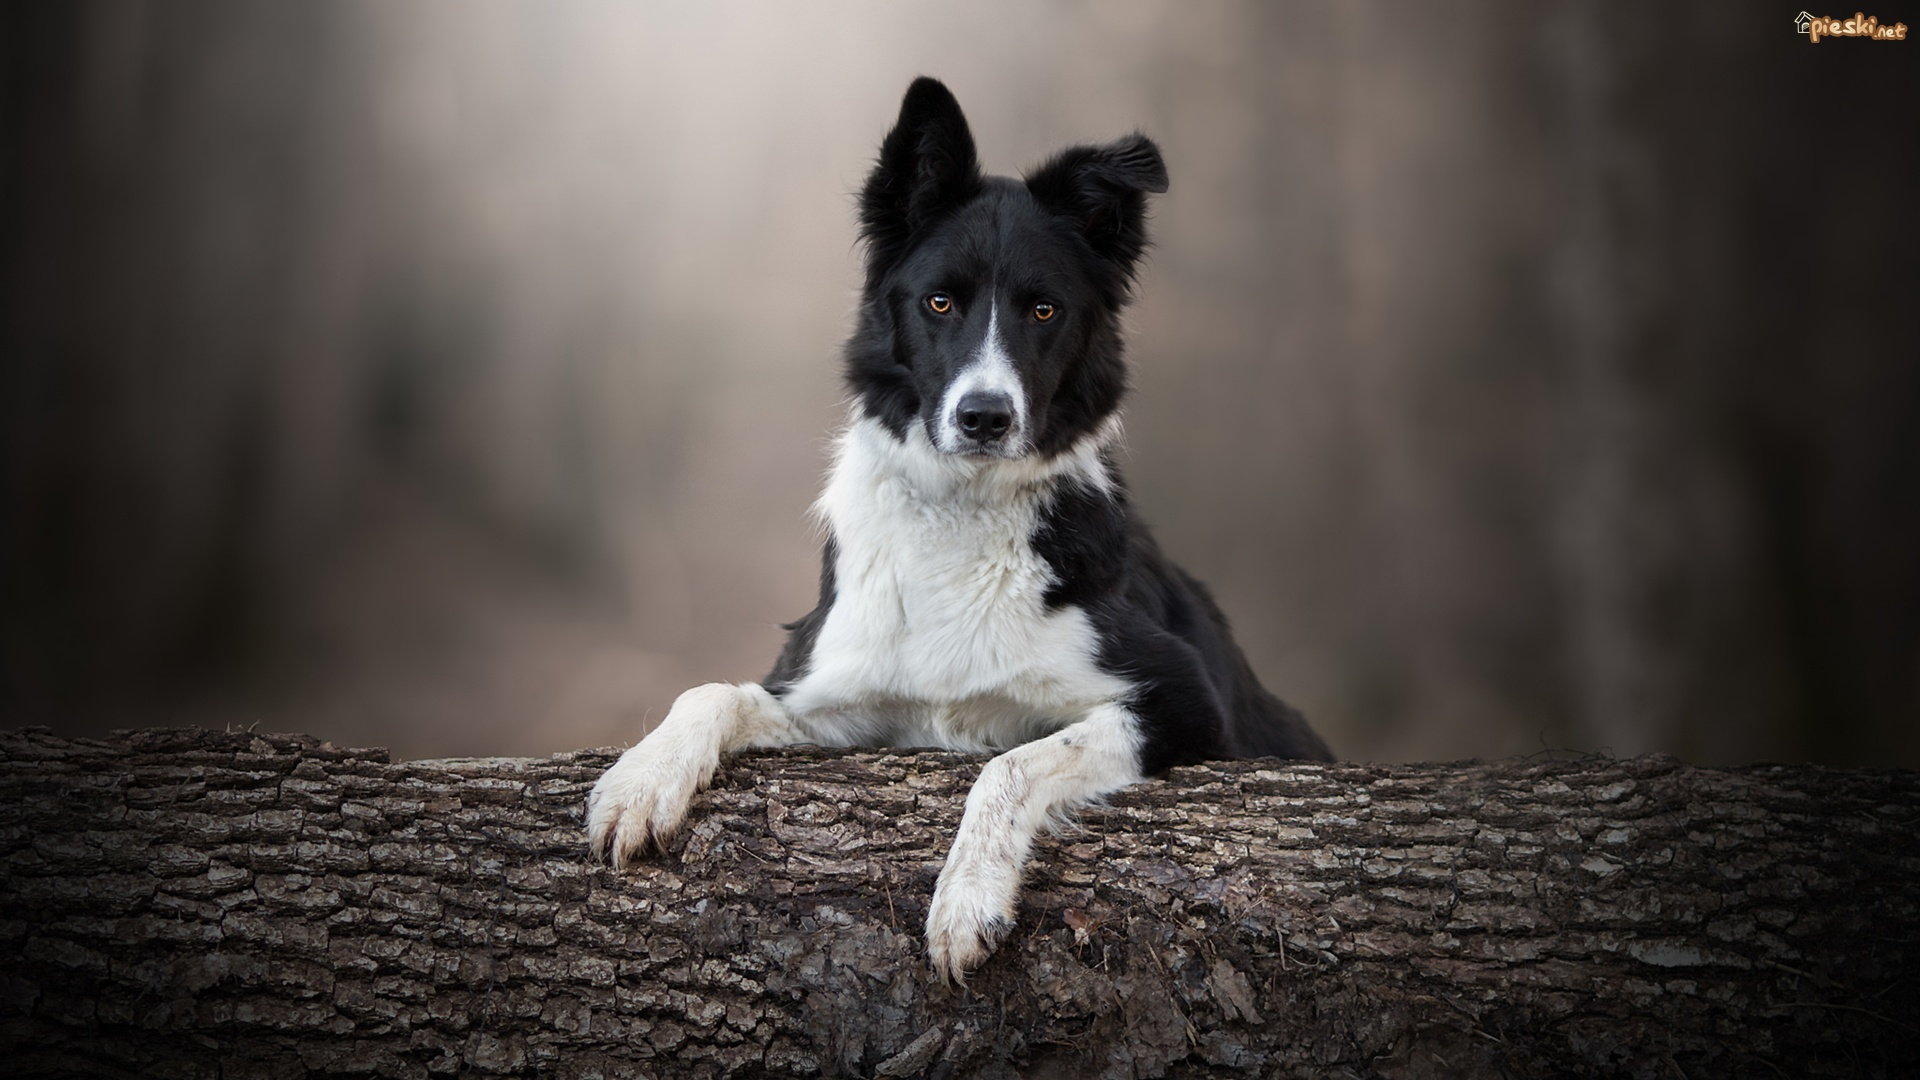 Pies, Border collie, Mordka, Drzewo